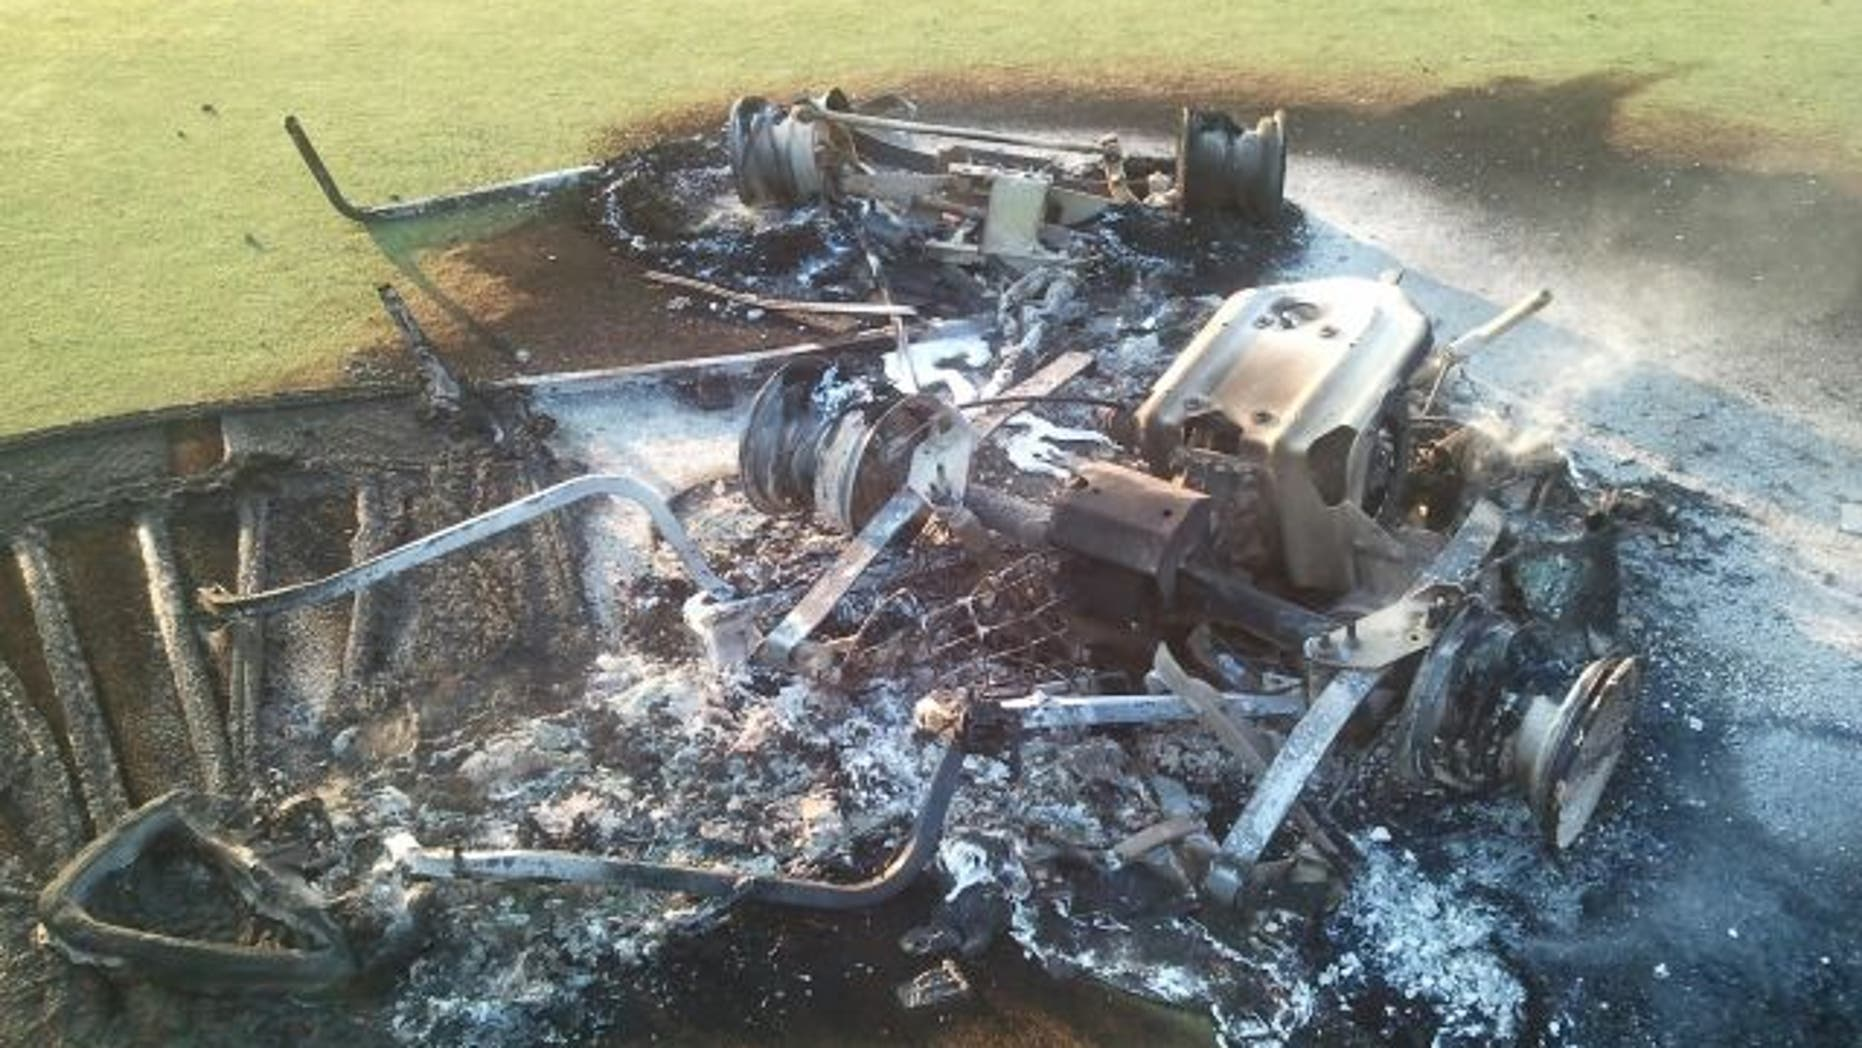 This undated photo shows a damaged golf cart.